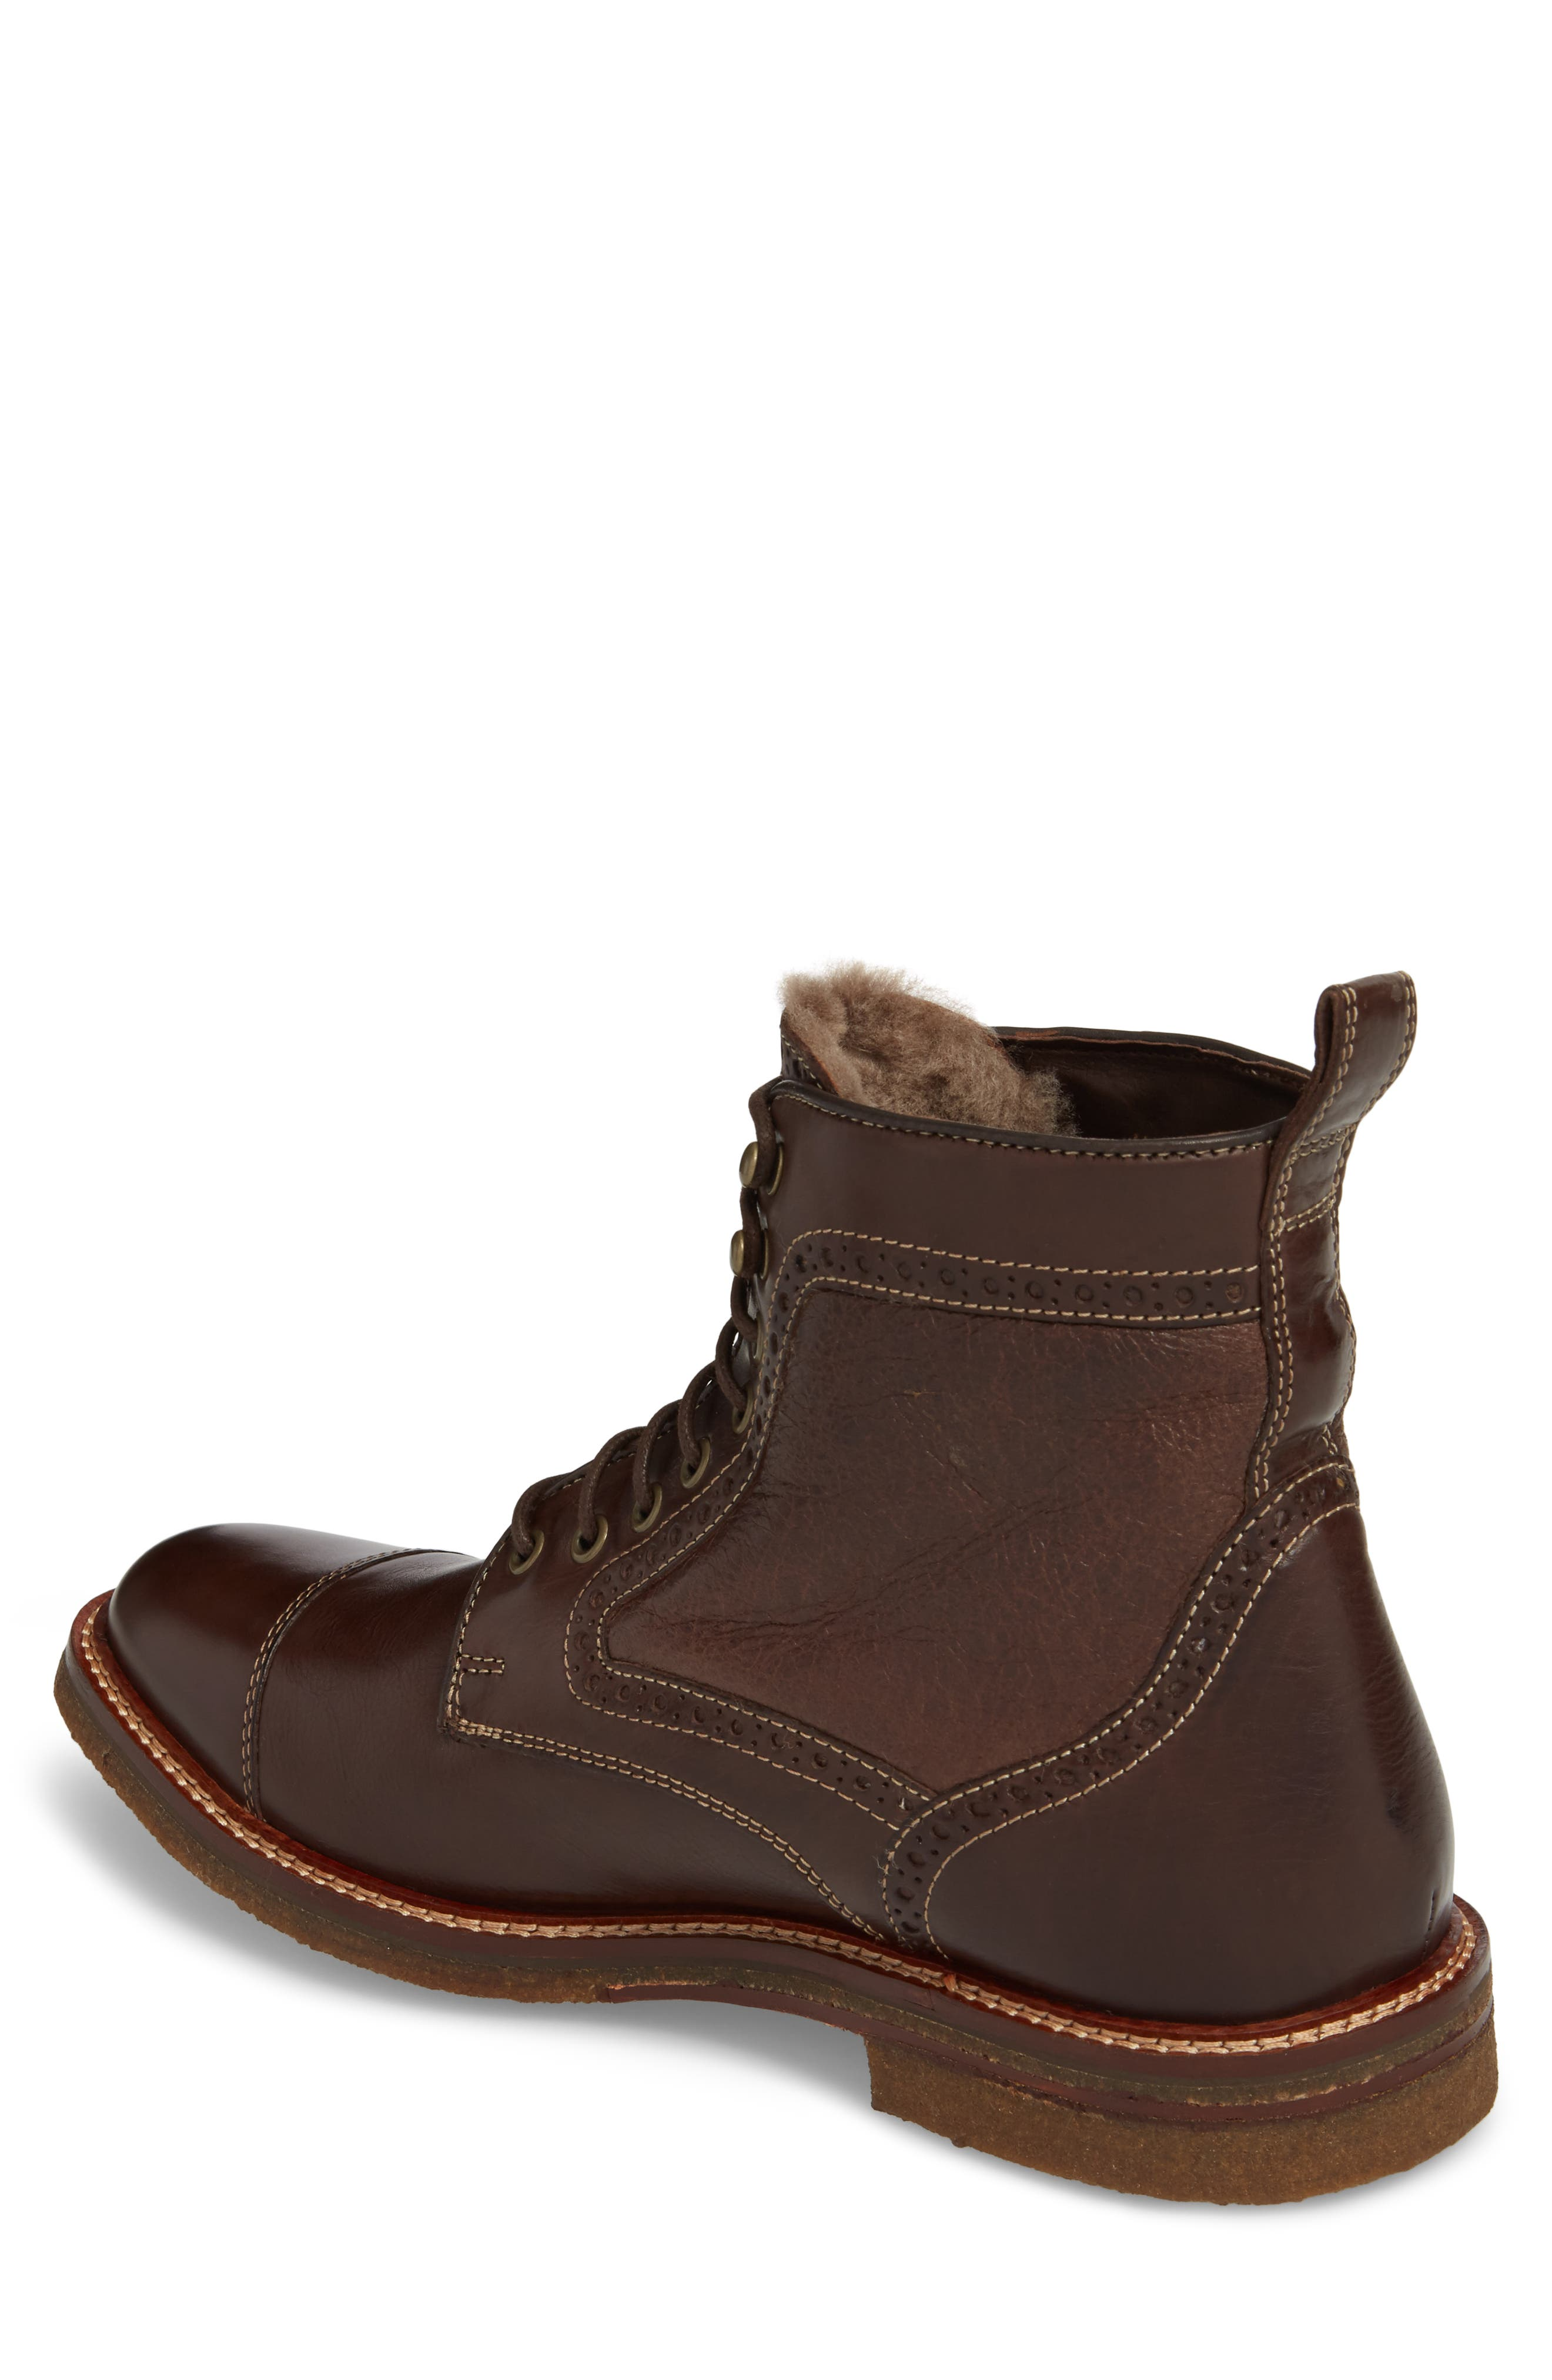 Forrester Genuine Shearling Lined Cap Toe Boot,                             Alternate thumbnail 2, color,                             Chocolate Leather